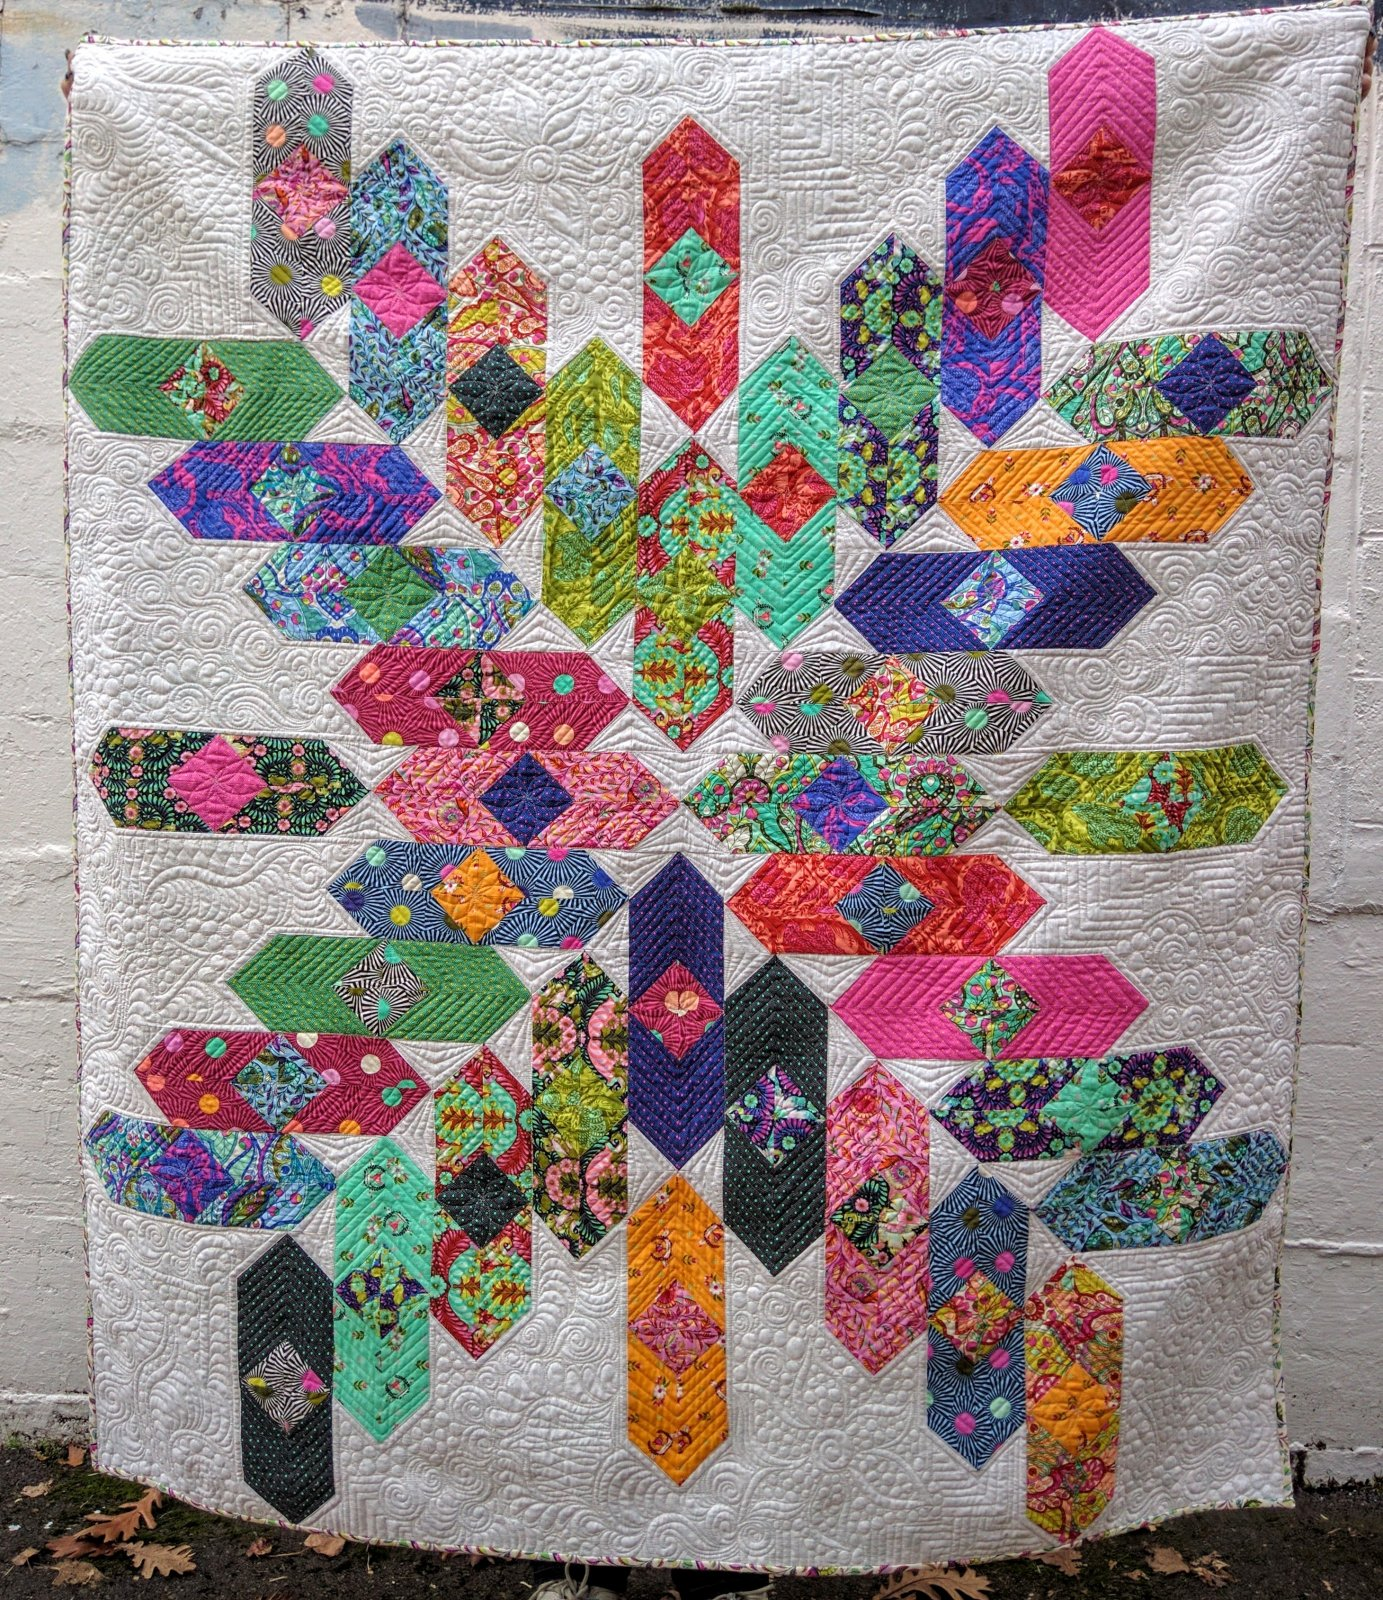 Slow and Steady Quilt - Me and My Sister Designs- Wild Jelly Rolls 3 - Finished quilt 54 1/2 x 62 1/2 - Includes Binding